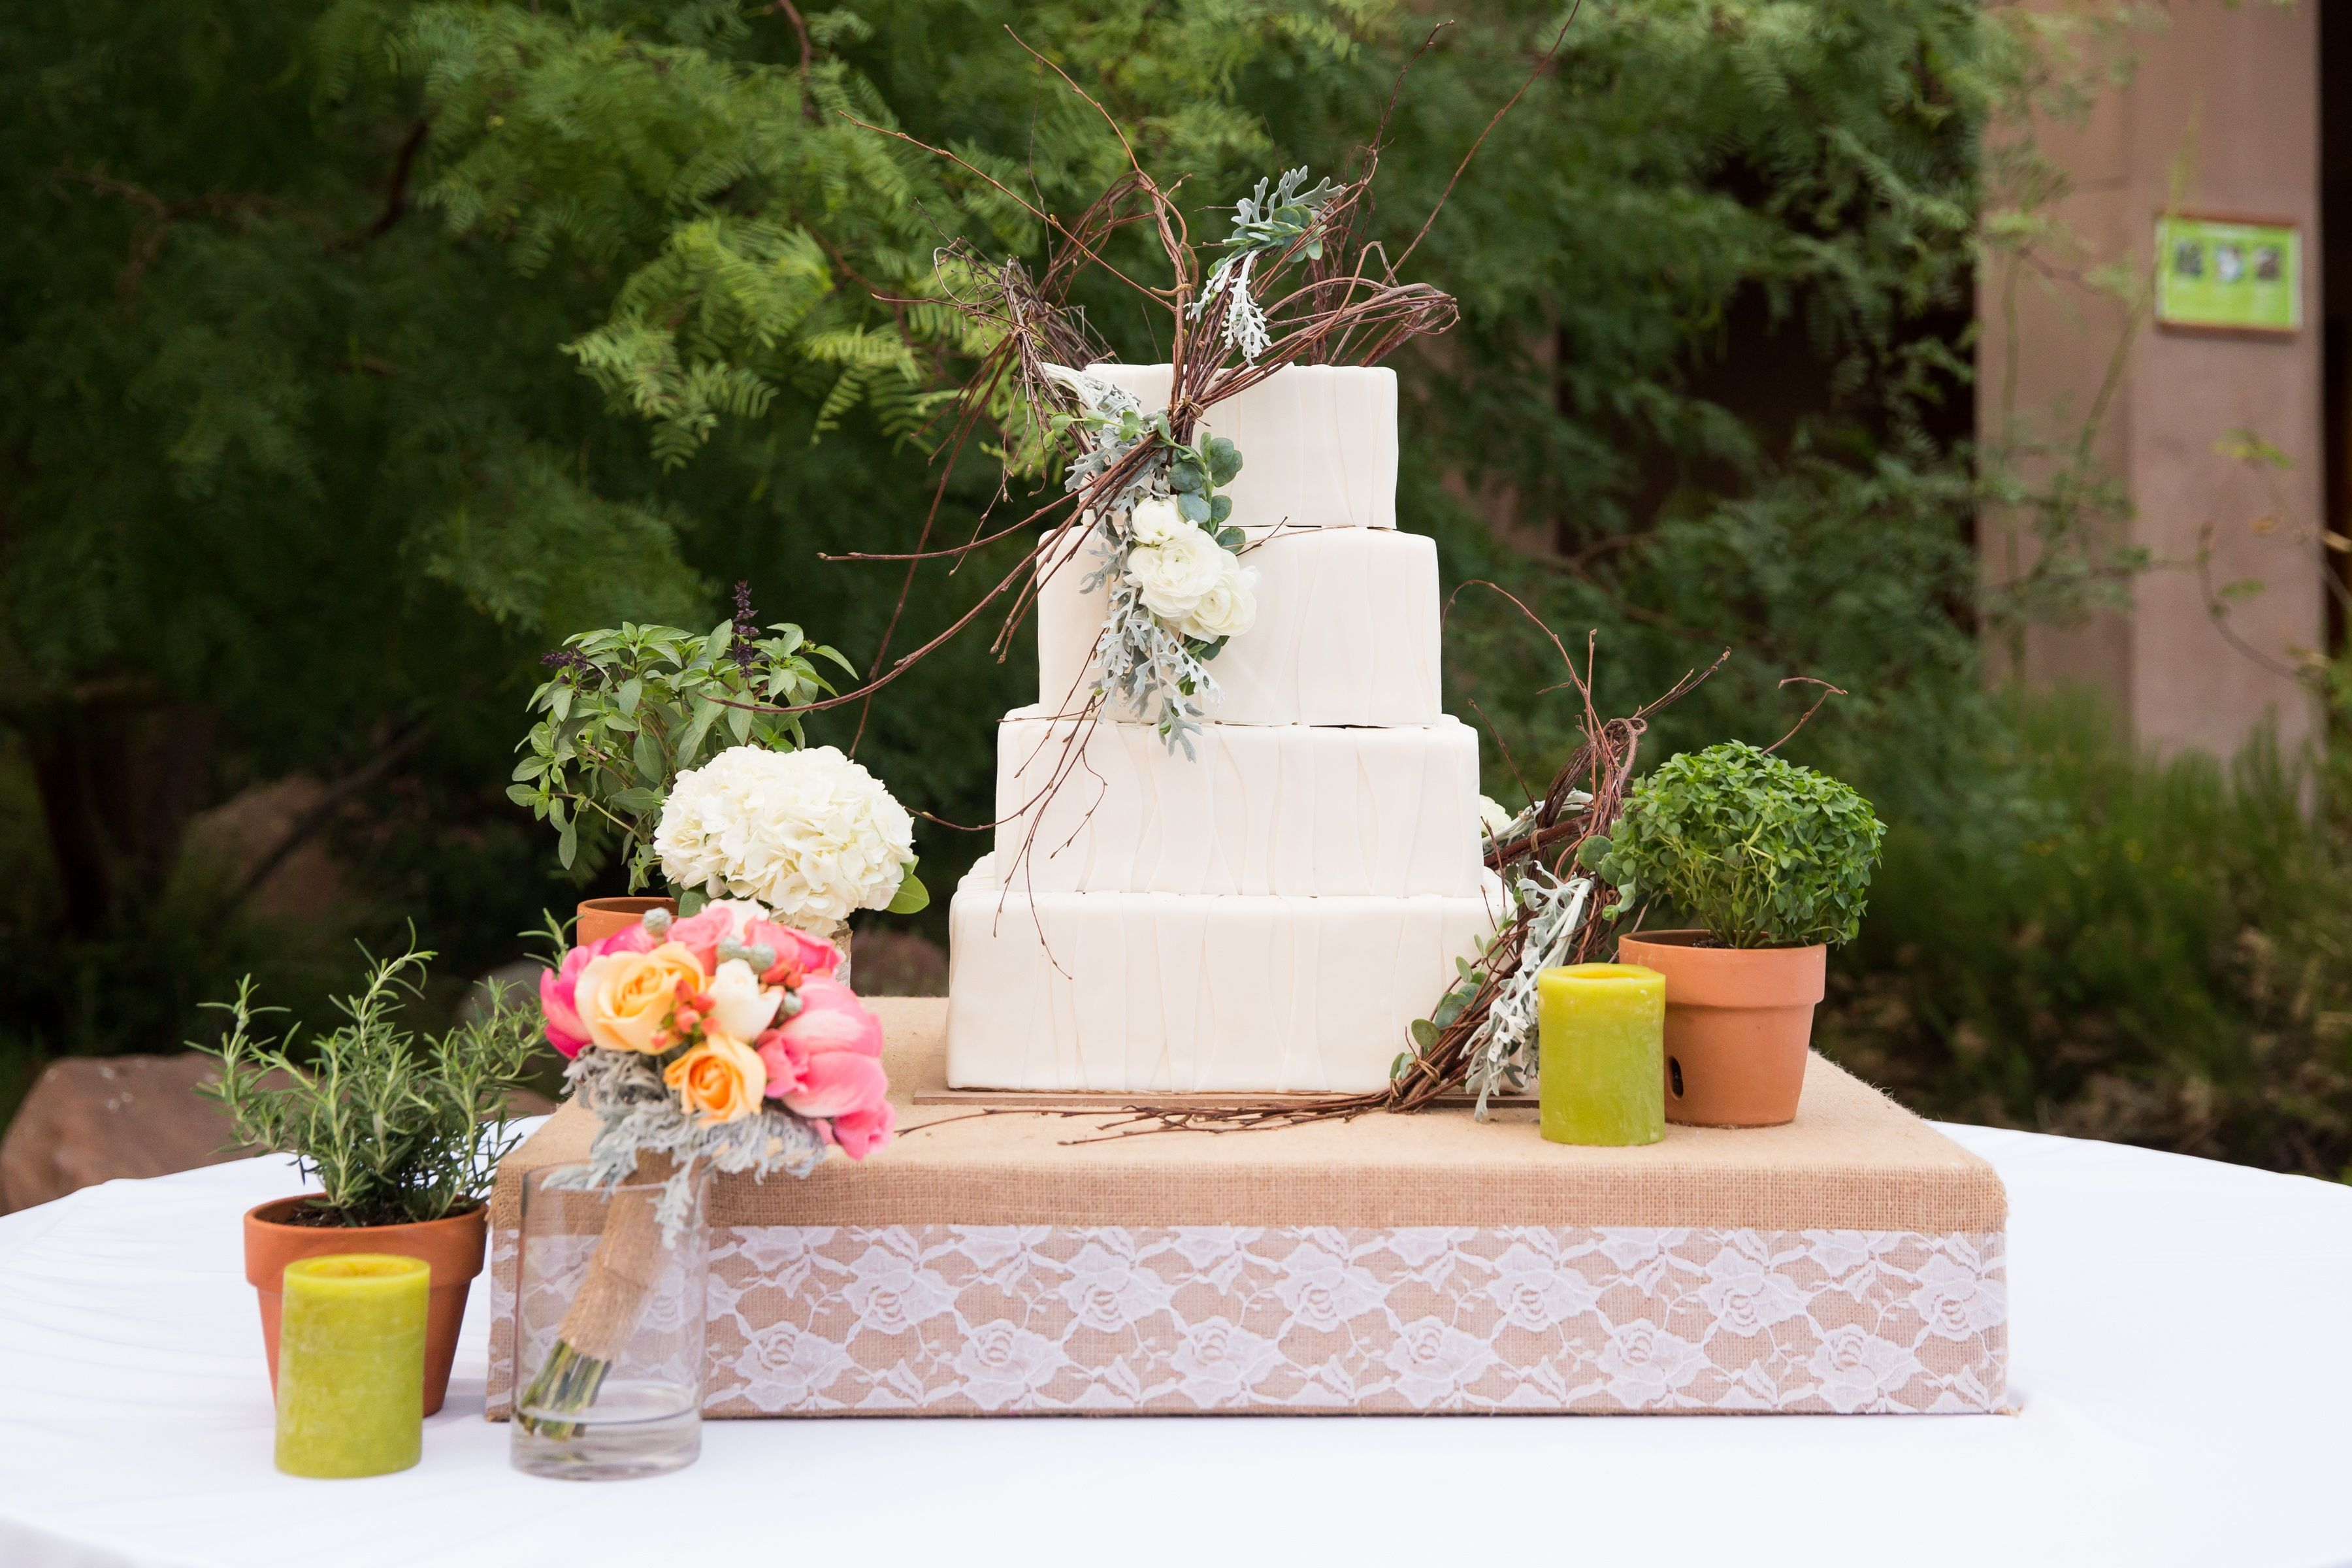 Rustic flower accents for your cake wwwfloracouture cake